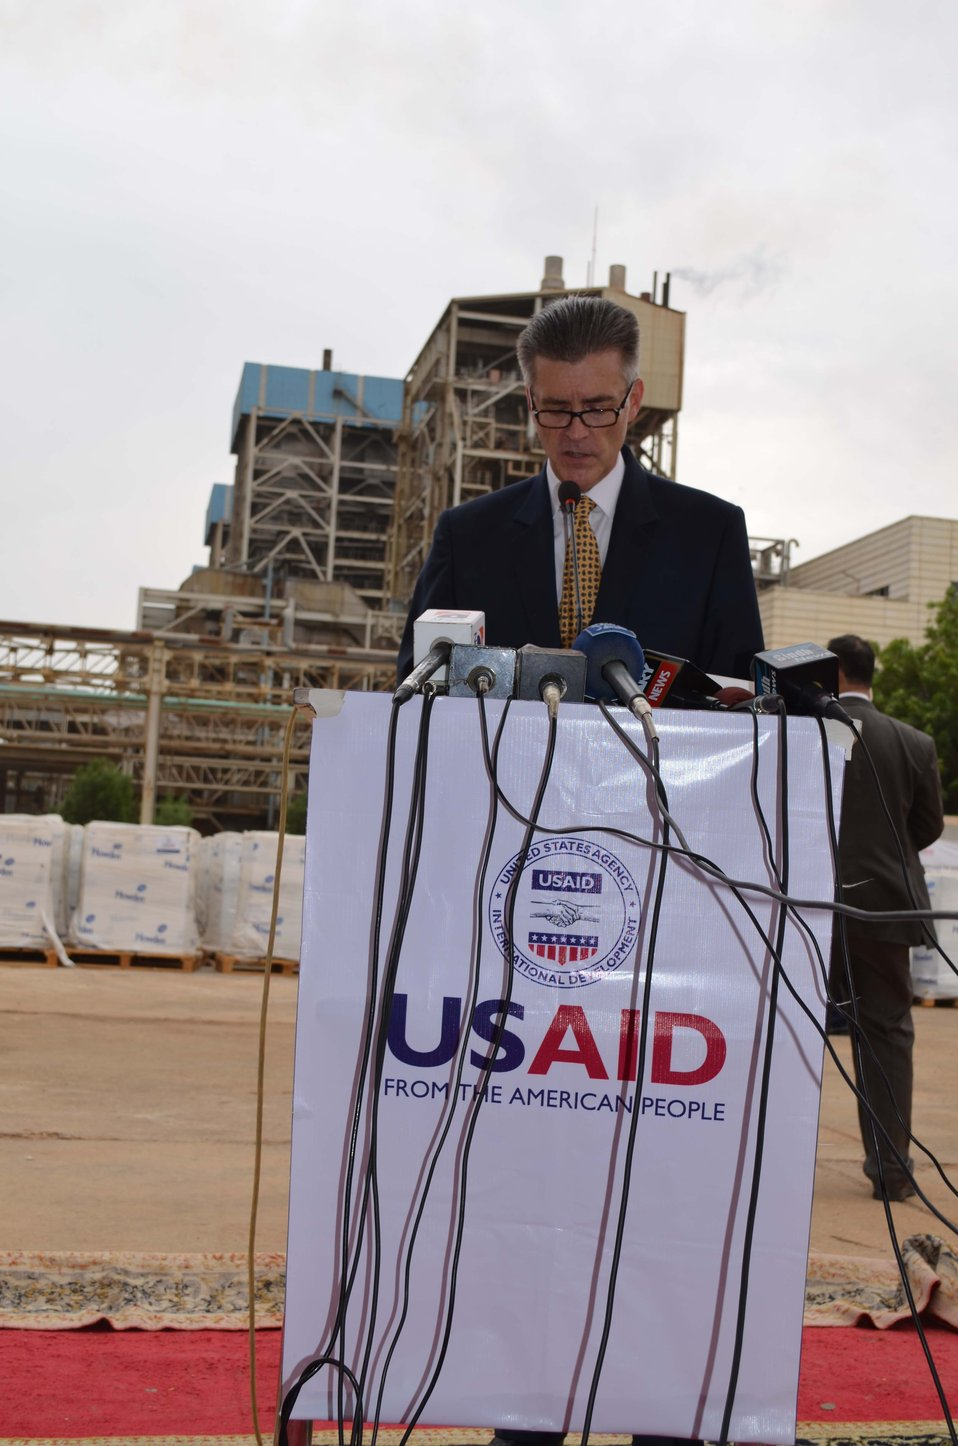 Ambassador Olson giving his remarks at the event